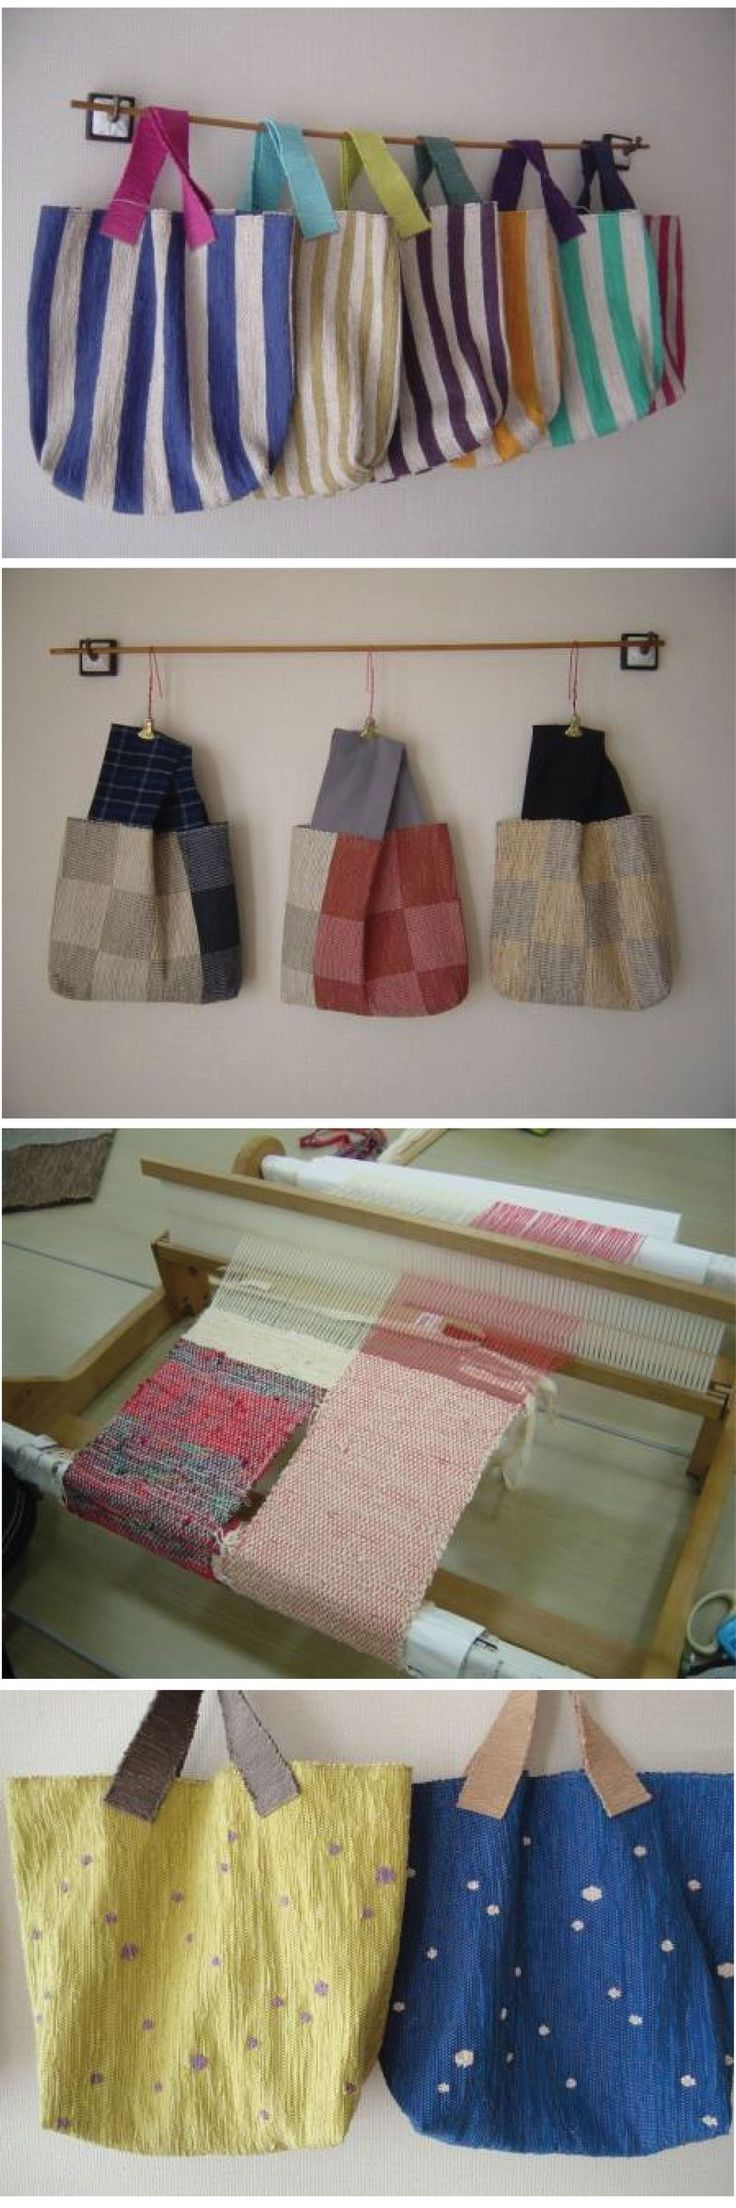 Sacs, link is bad,no pattern, but would be easy to make. Fabric and colors make these simple bags really nice.